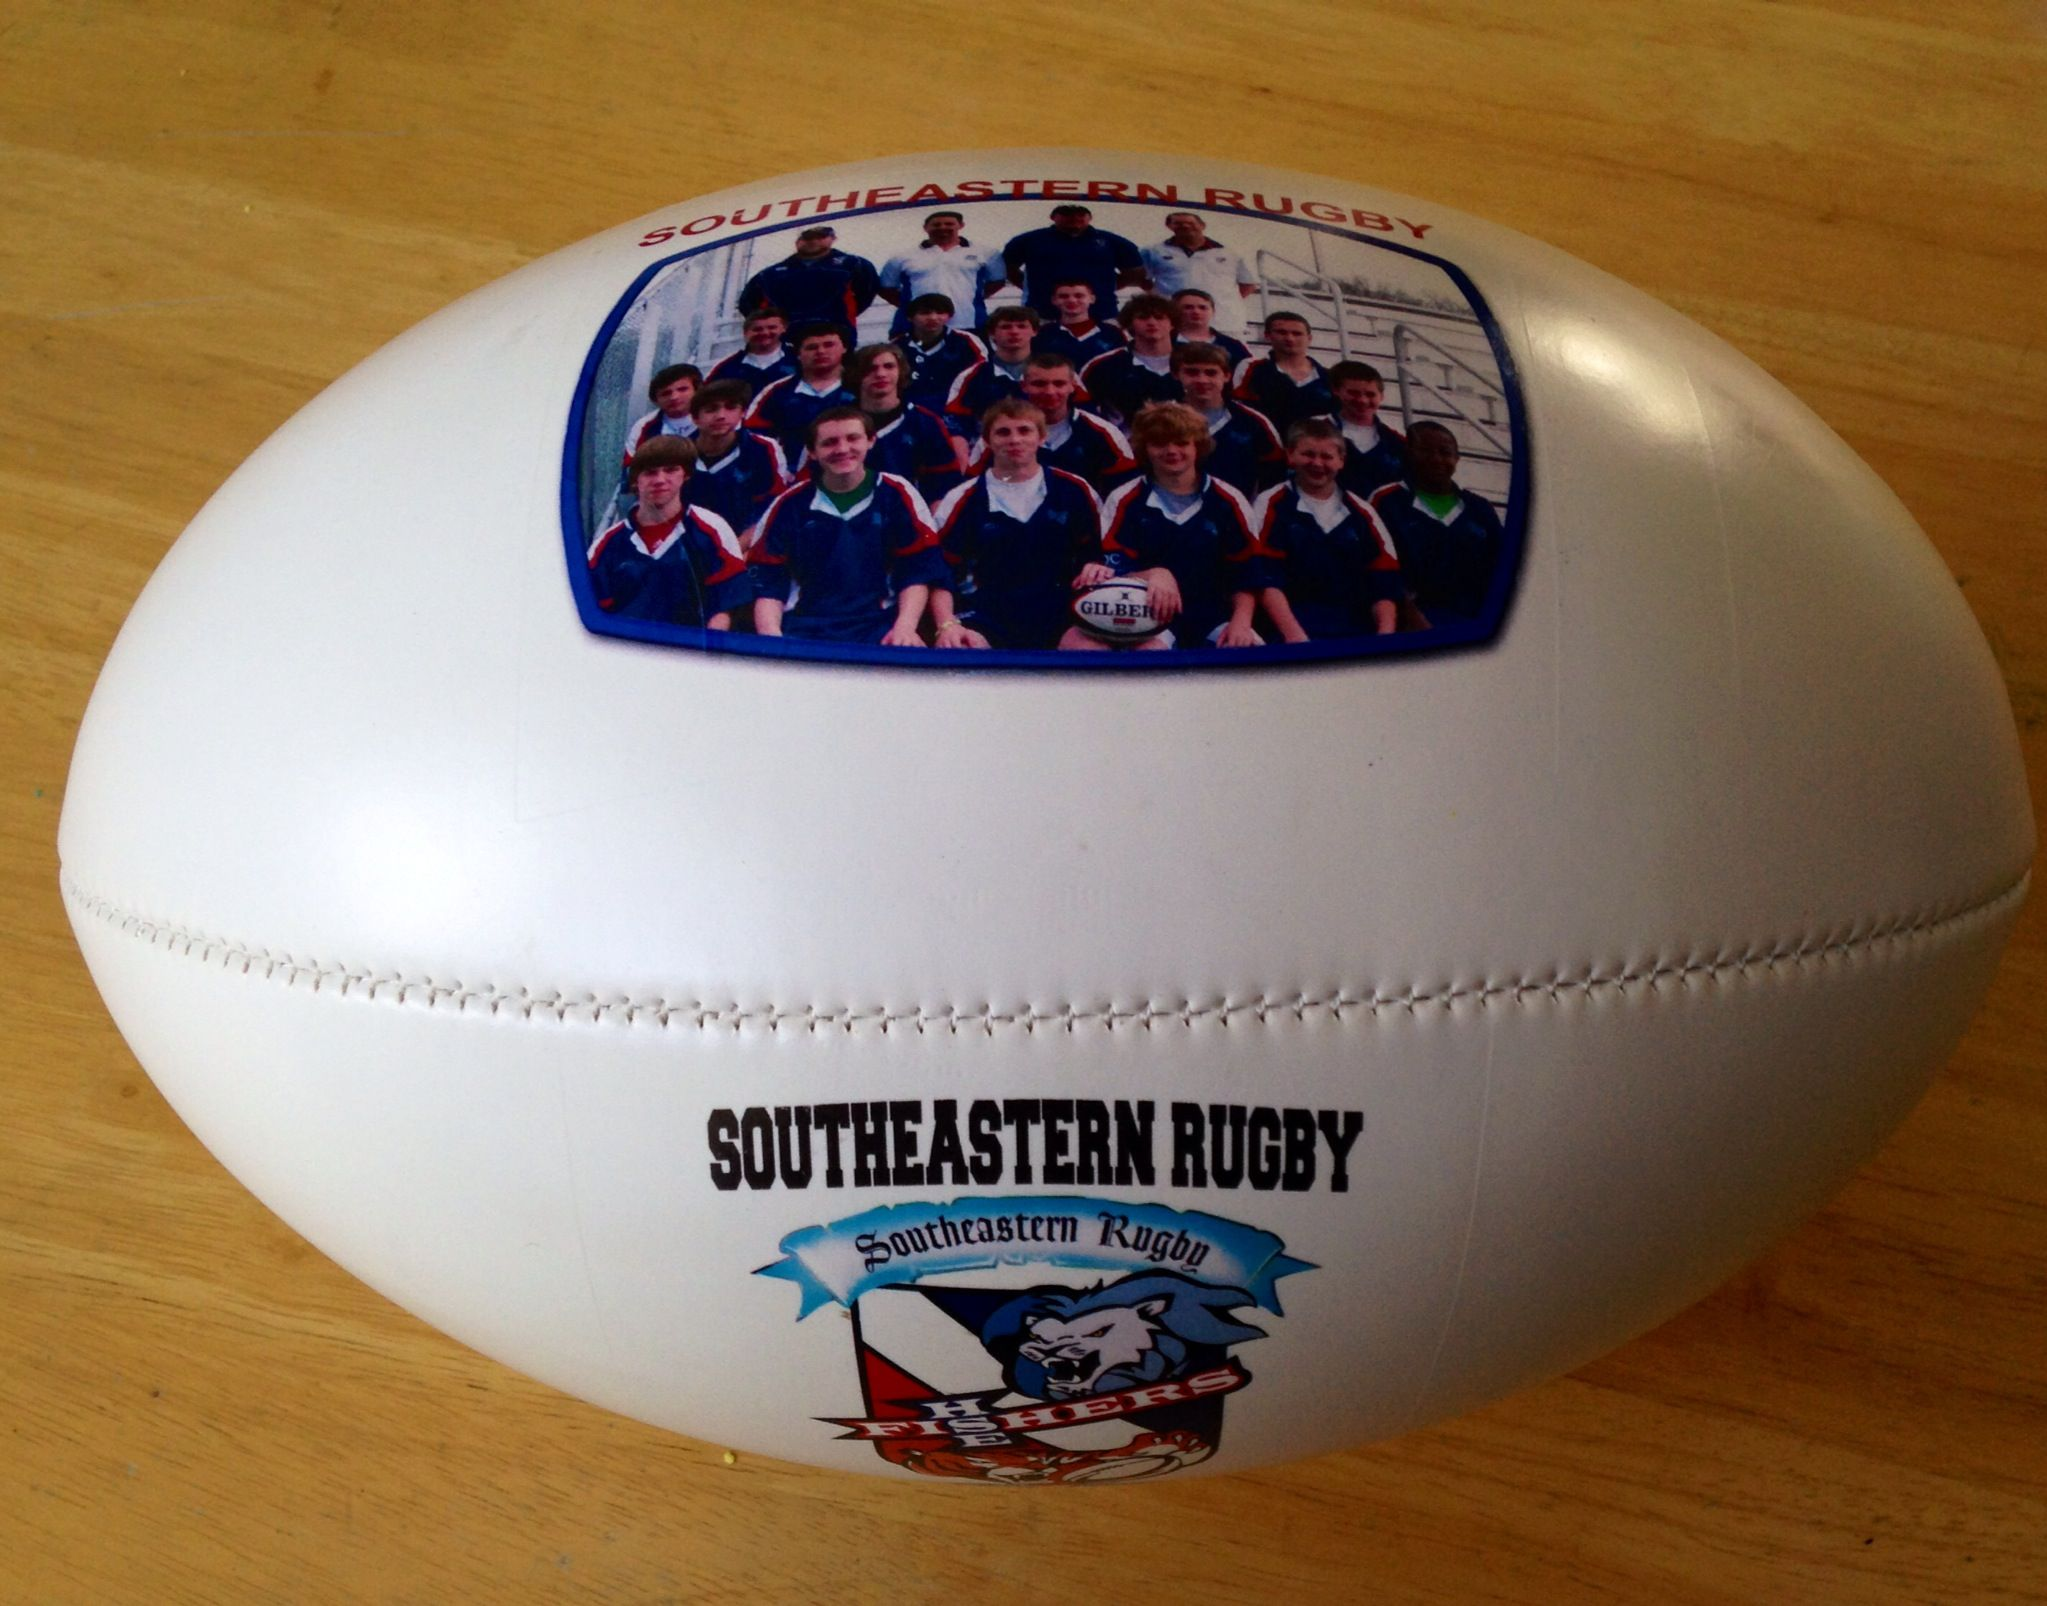 Personalized Rugby Balls Done By Get On The Ball Photos Are Great Gifts For The Coach And Players There Are Three Sides T Rugby Balls Sports Gifts Rugby Ball